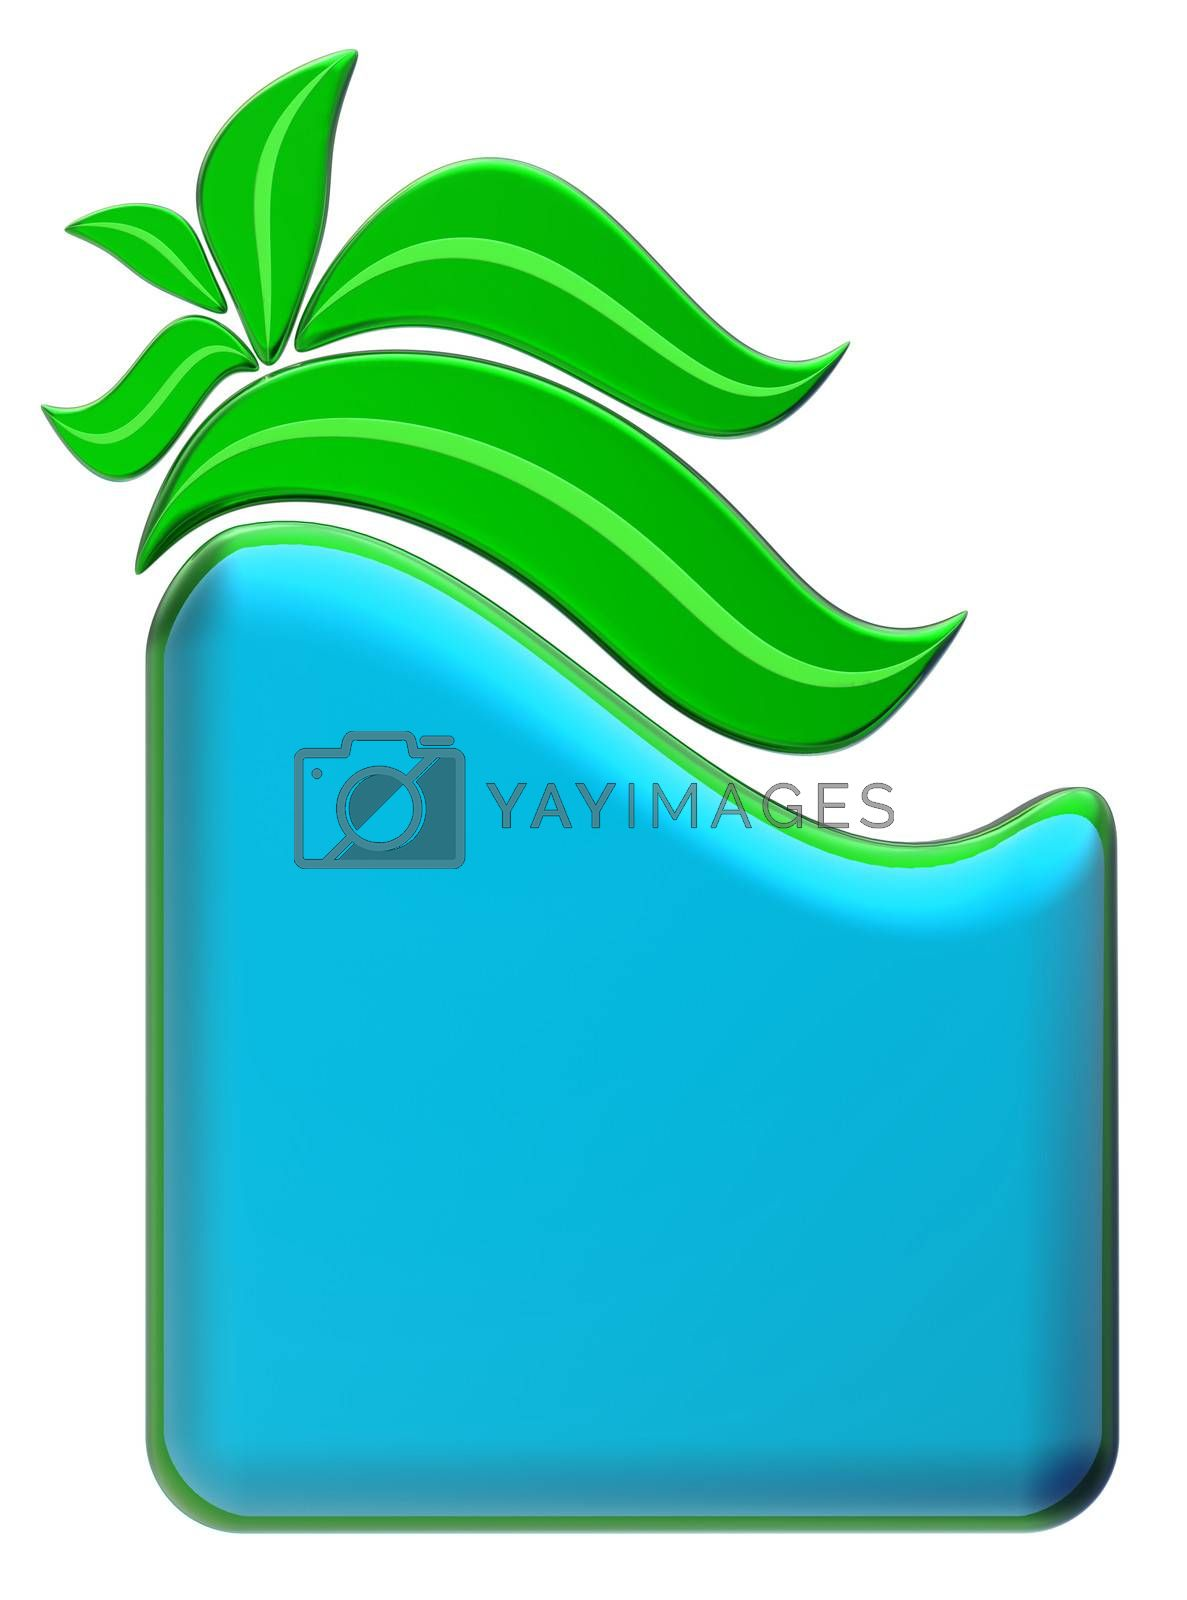 Green and blue form with green leafs